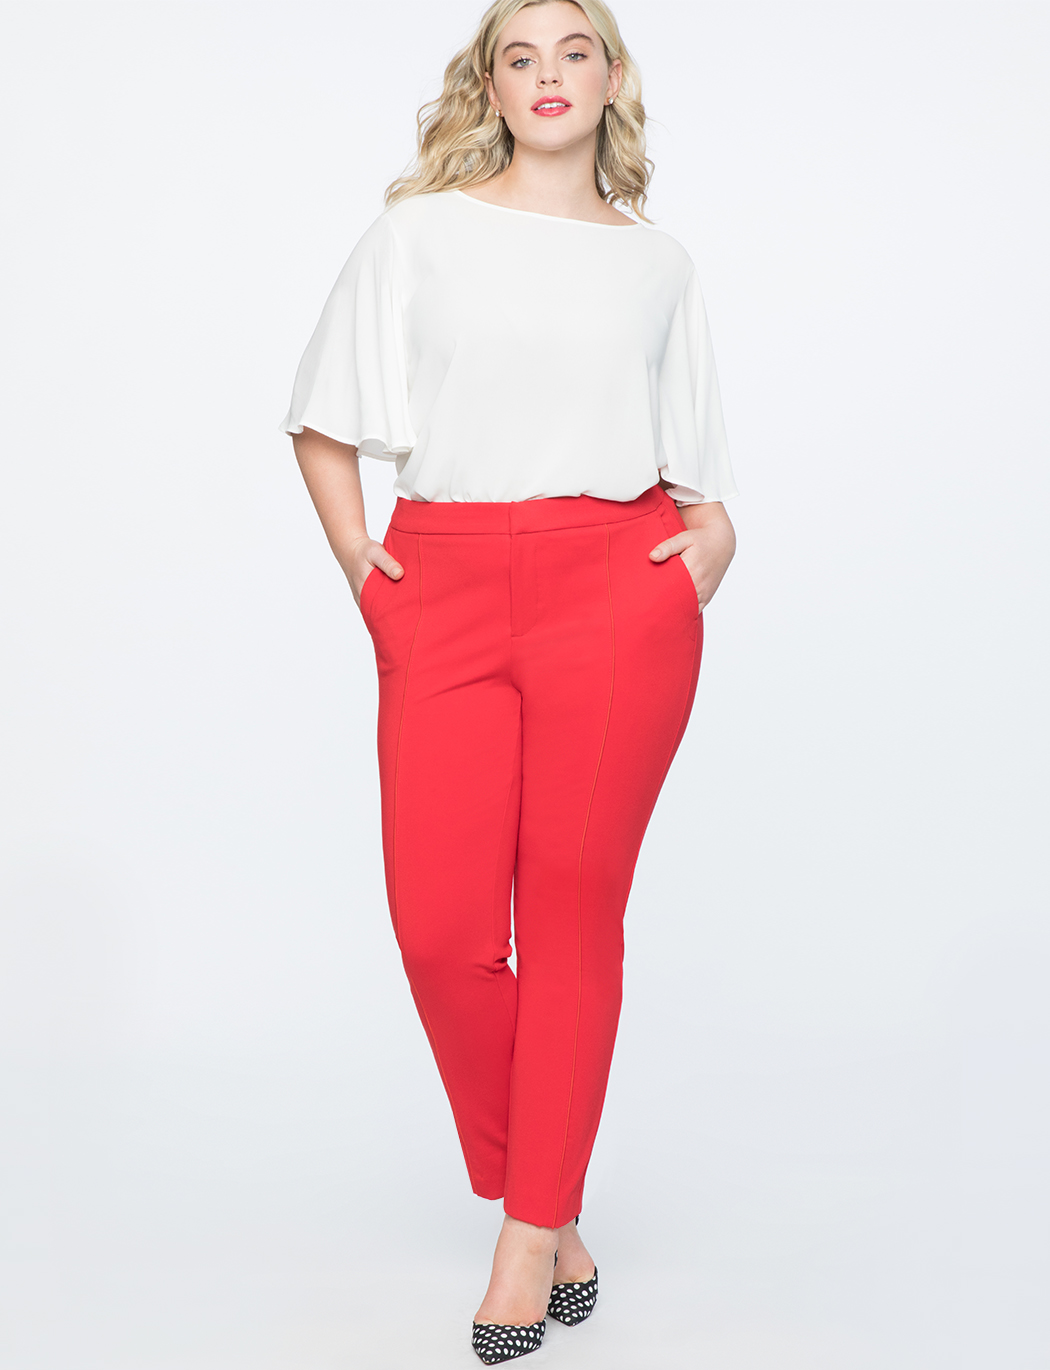 9-to-5 Stretch Work Pant | Women\'s Plus Size Pants | ELOQUII